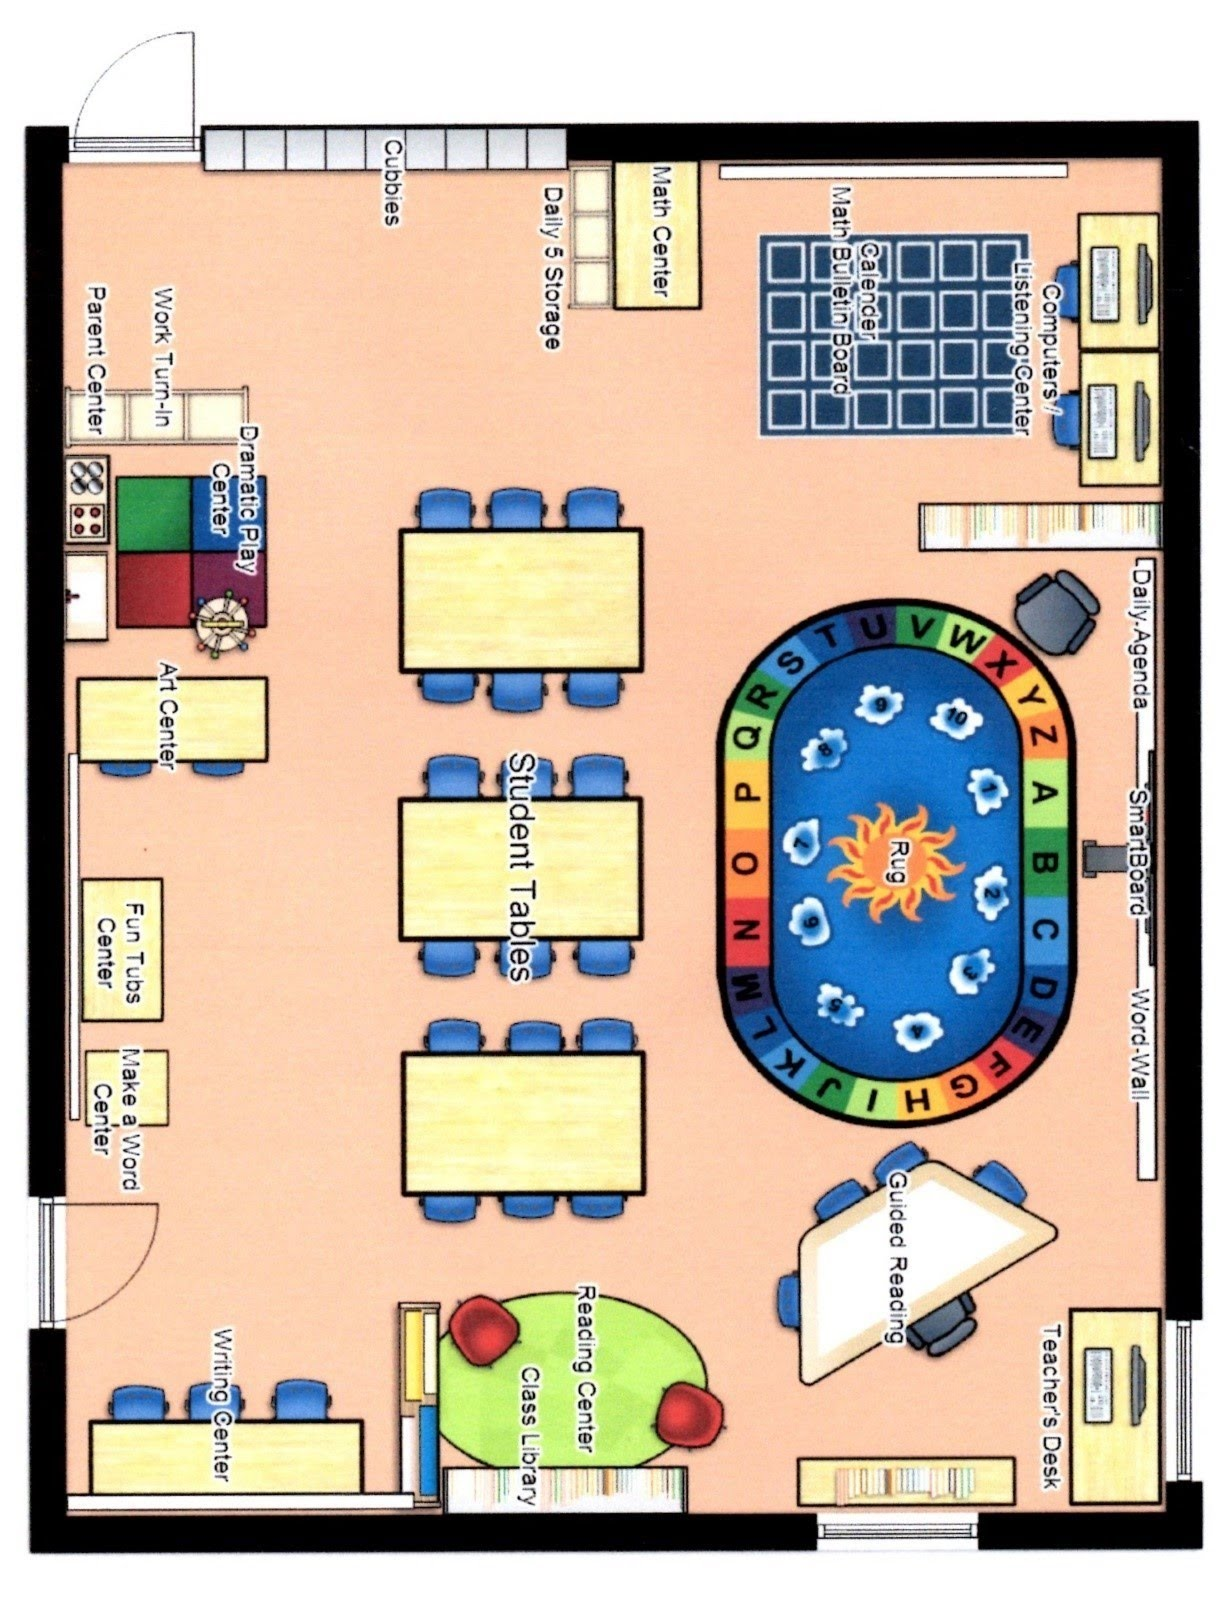 Classroom Design For Literacy ~ Office best images about classroom floorplan designs on